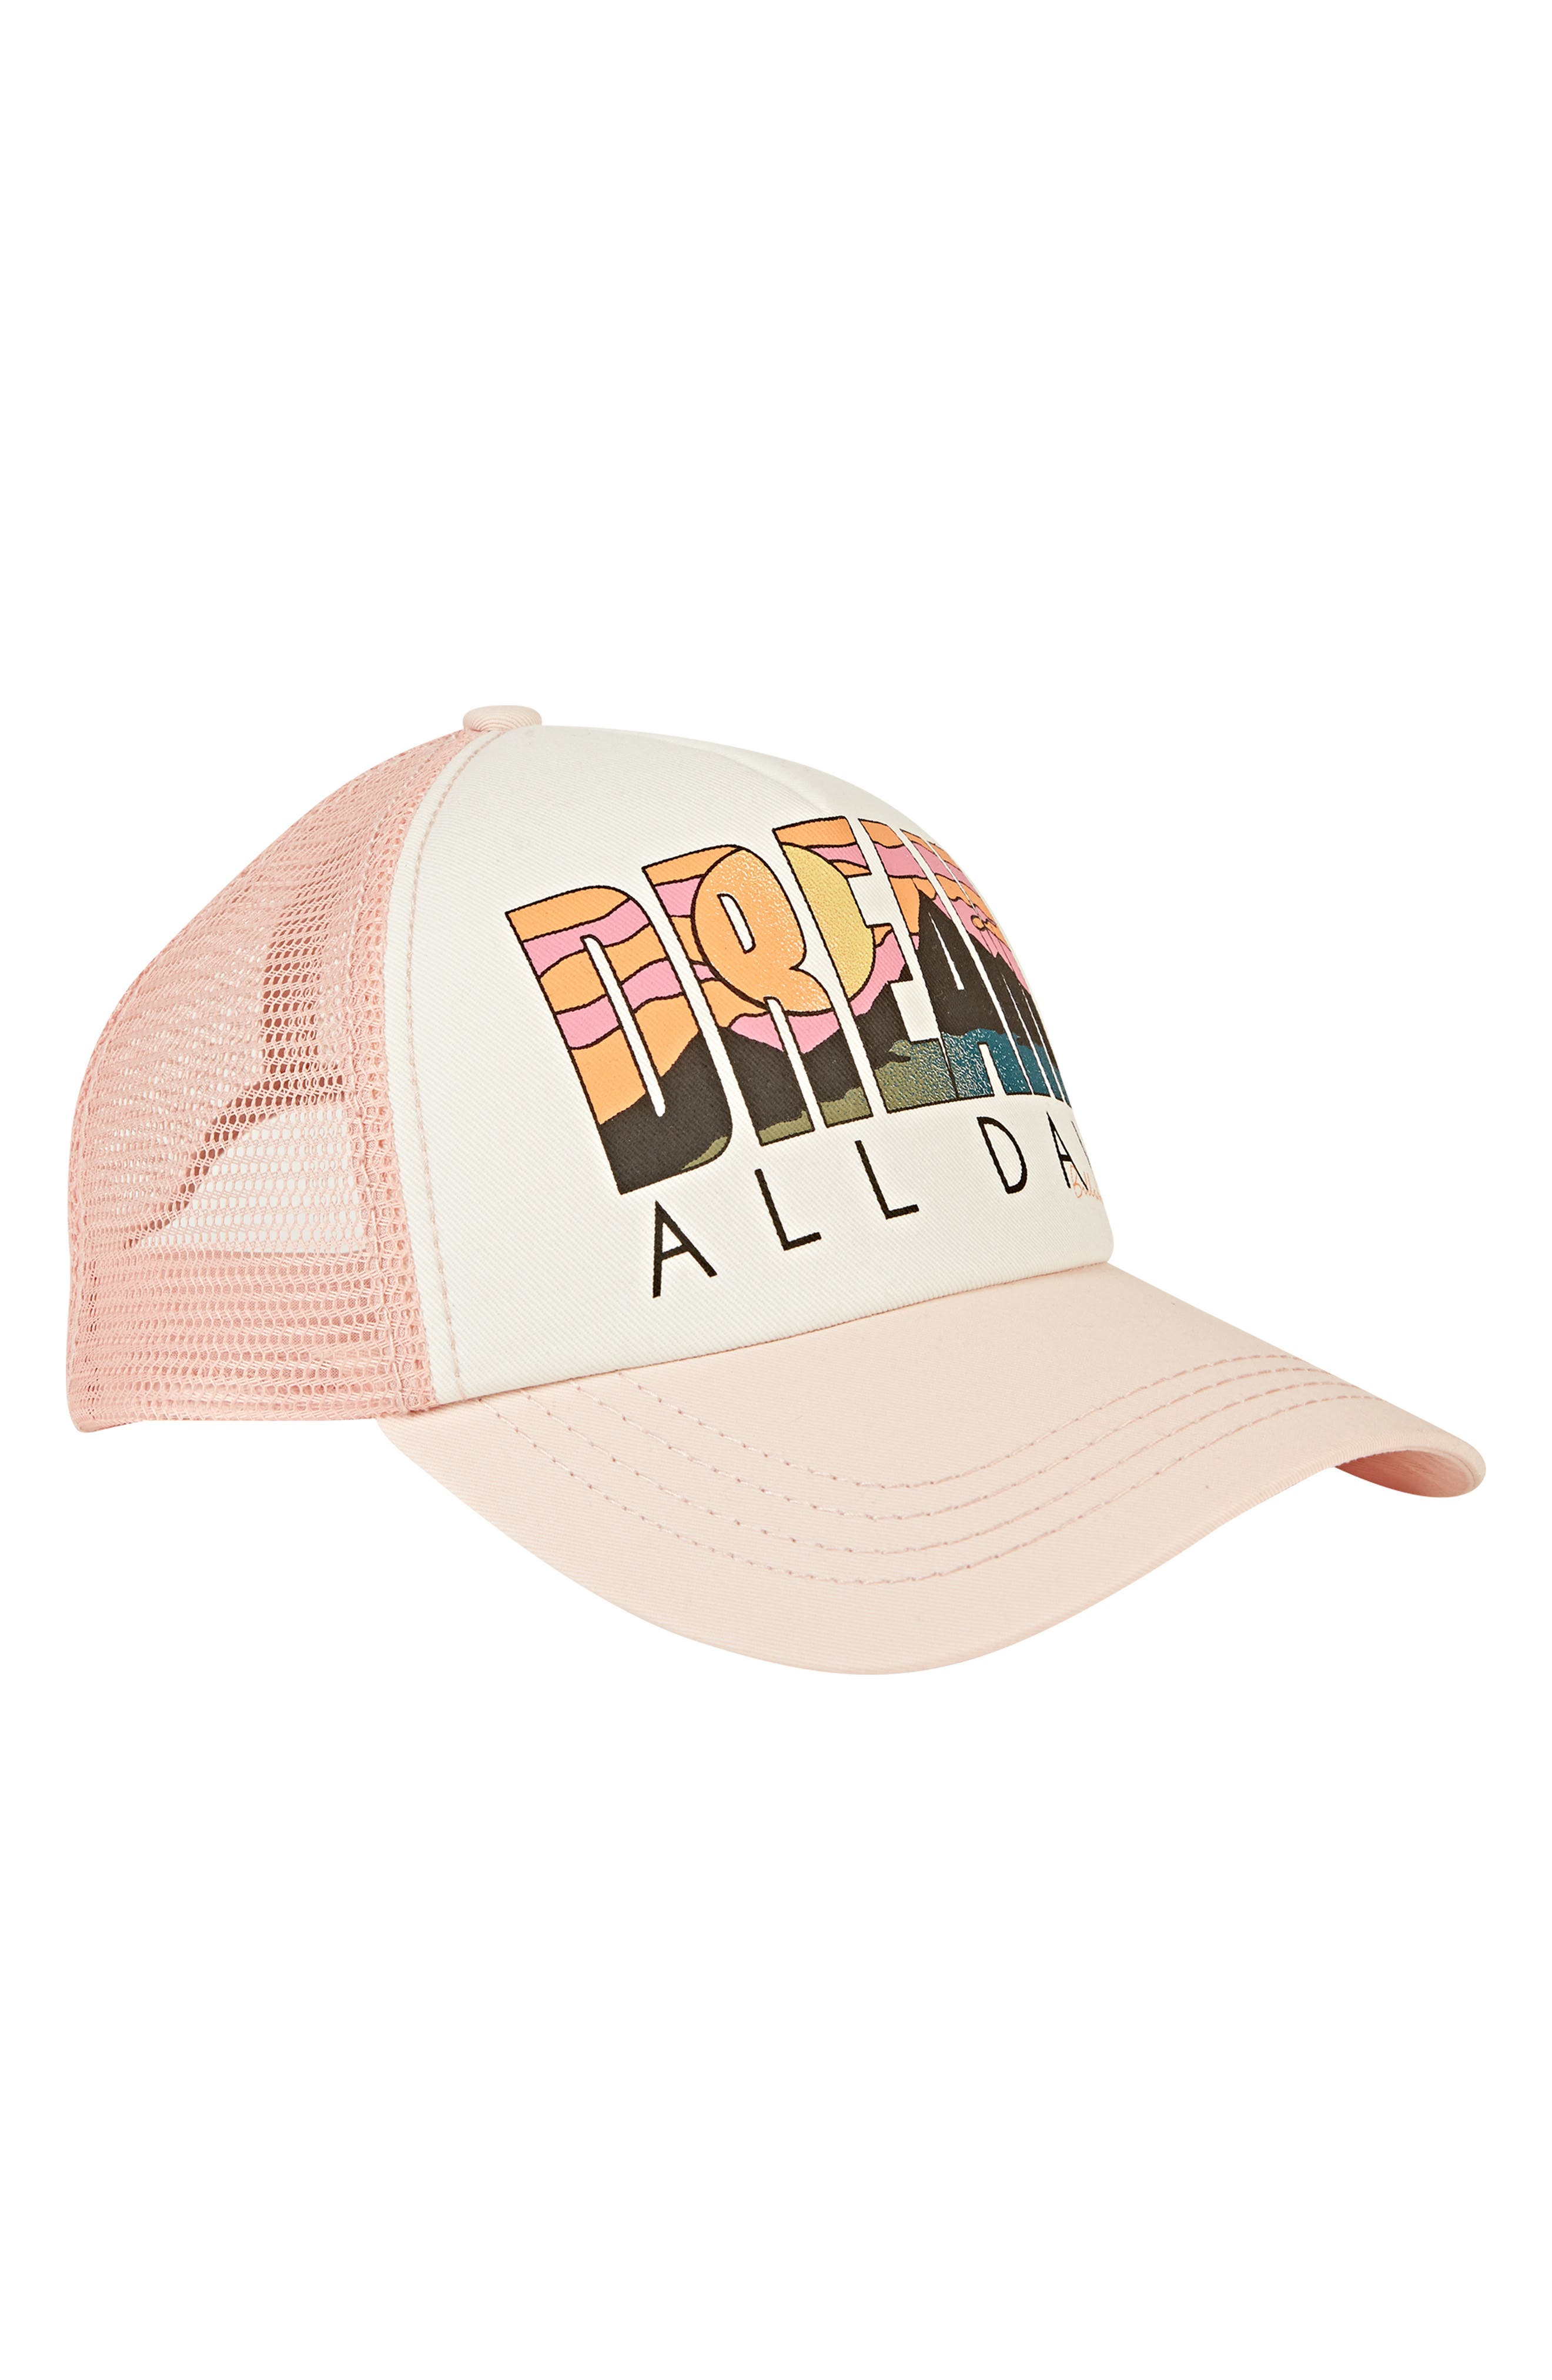 0be1c4a6 Women's Hats New Arrivals: Clothing, Shoes & Beauty   Nordstrom